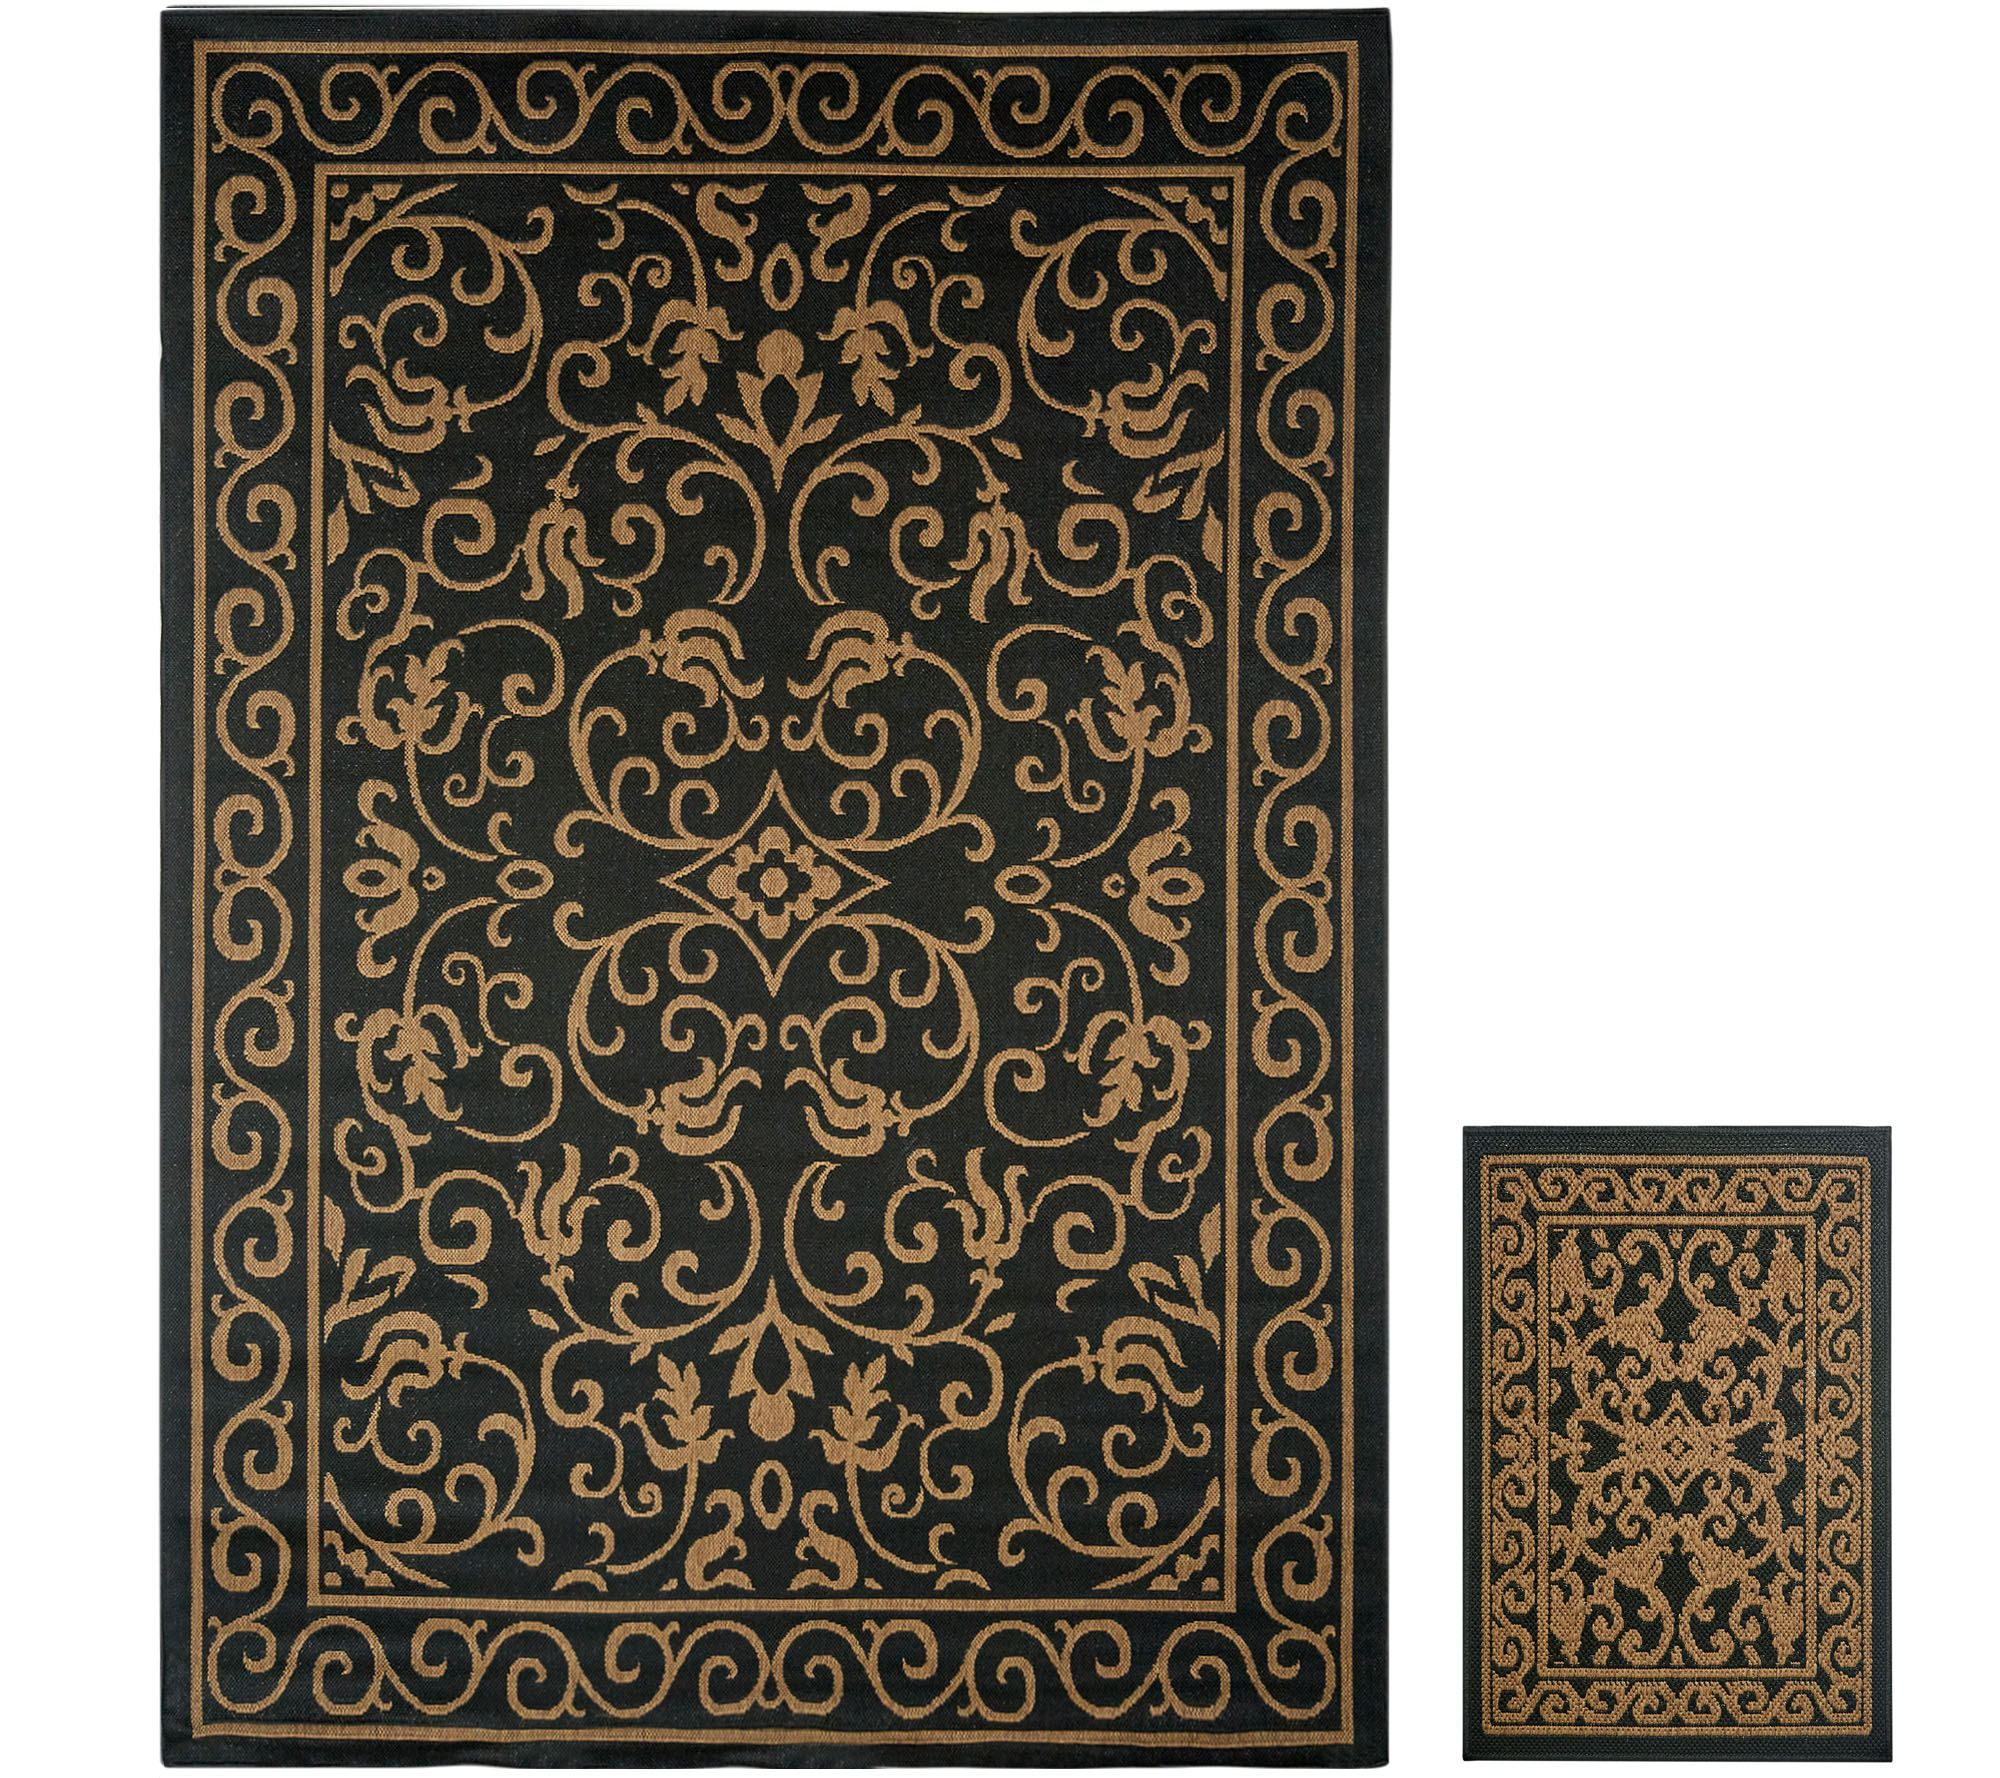 Veranda Living 5x7 Reversible Indoor Outdoor Scroll Rug With Bonus Doormat M51805